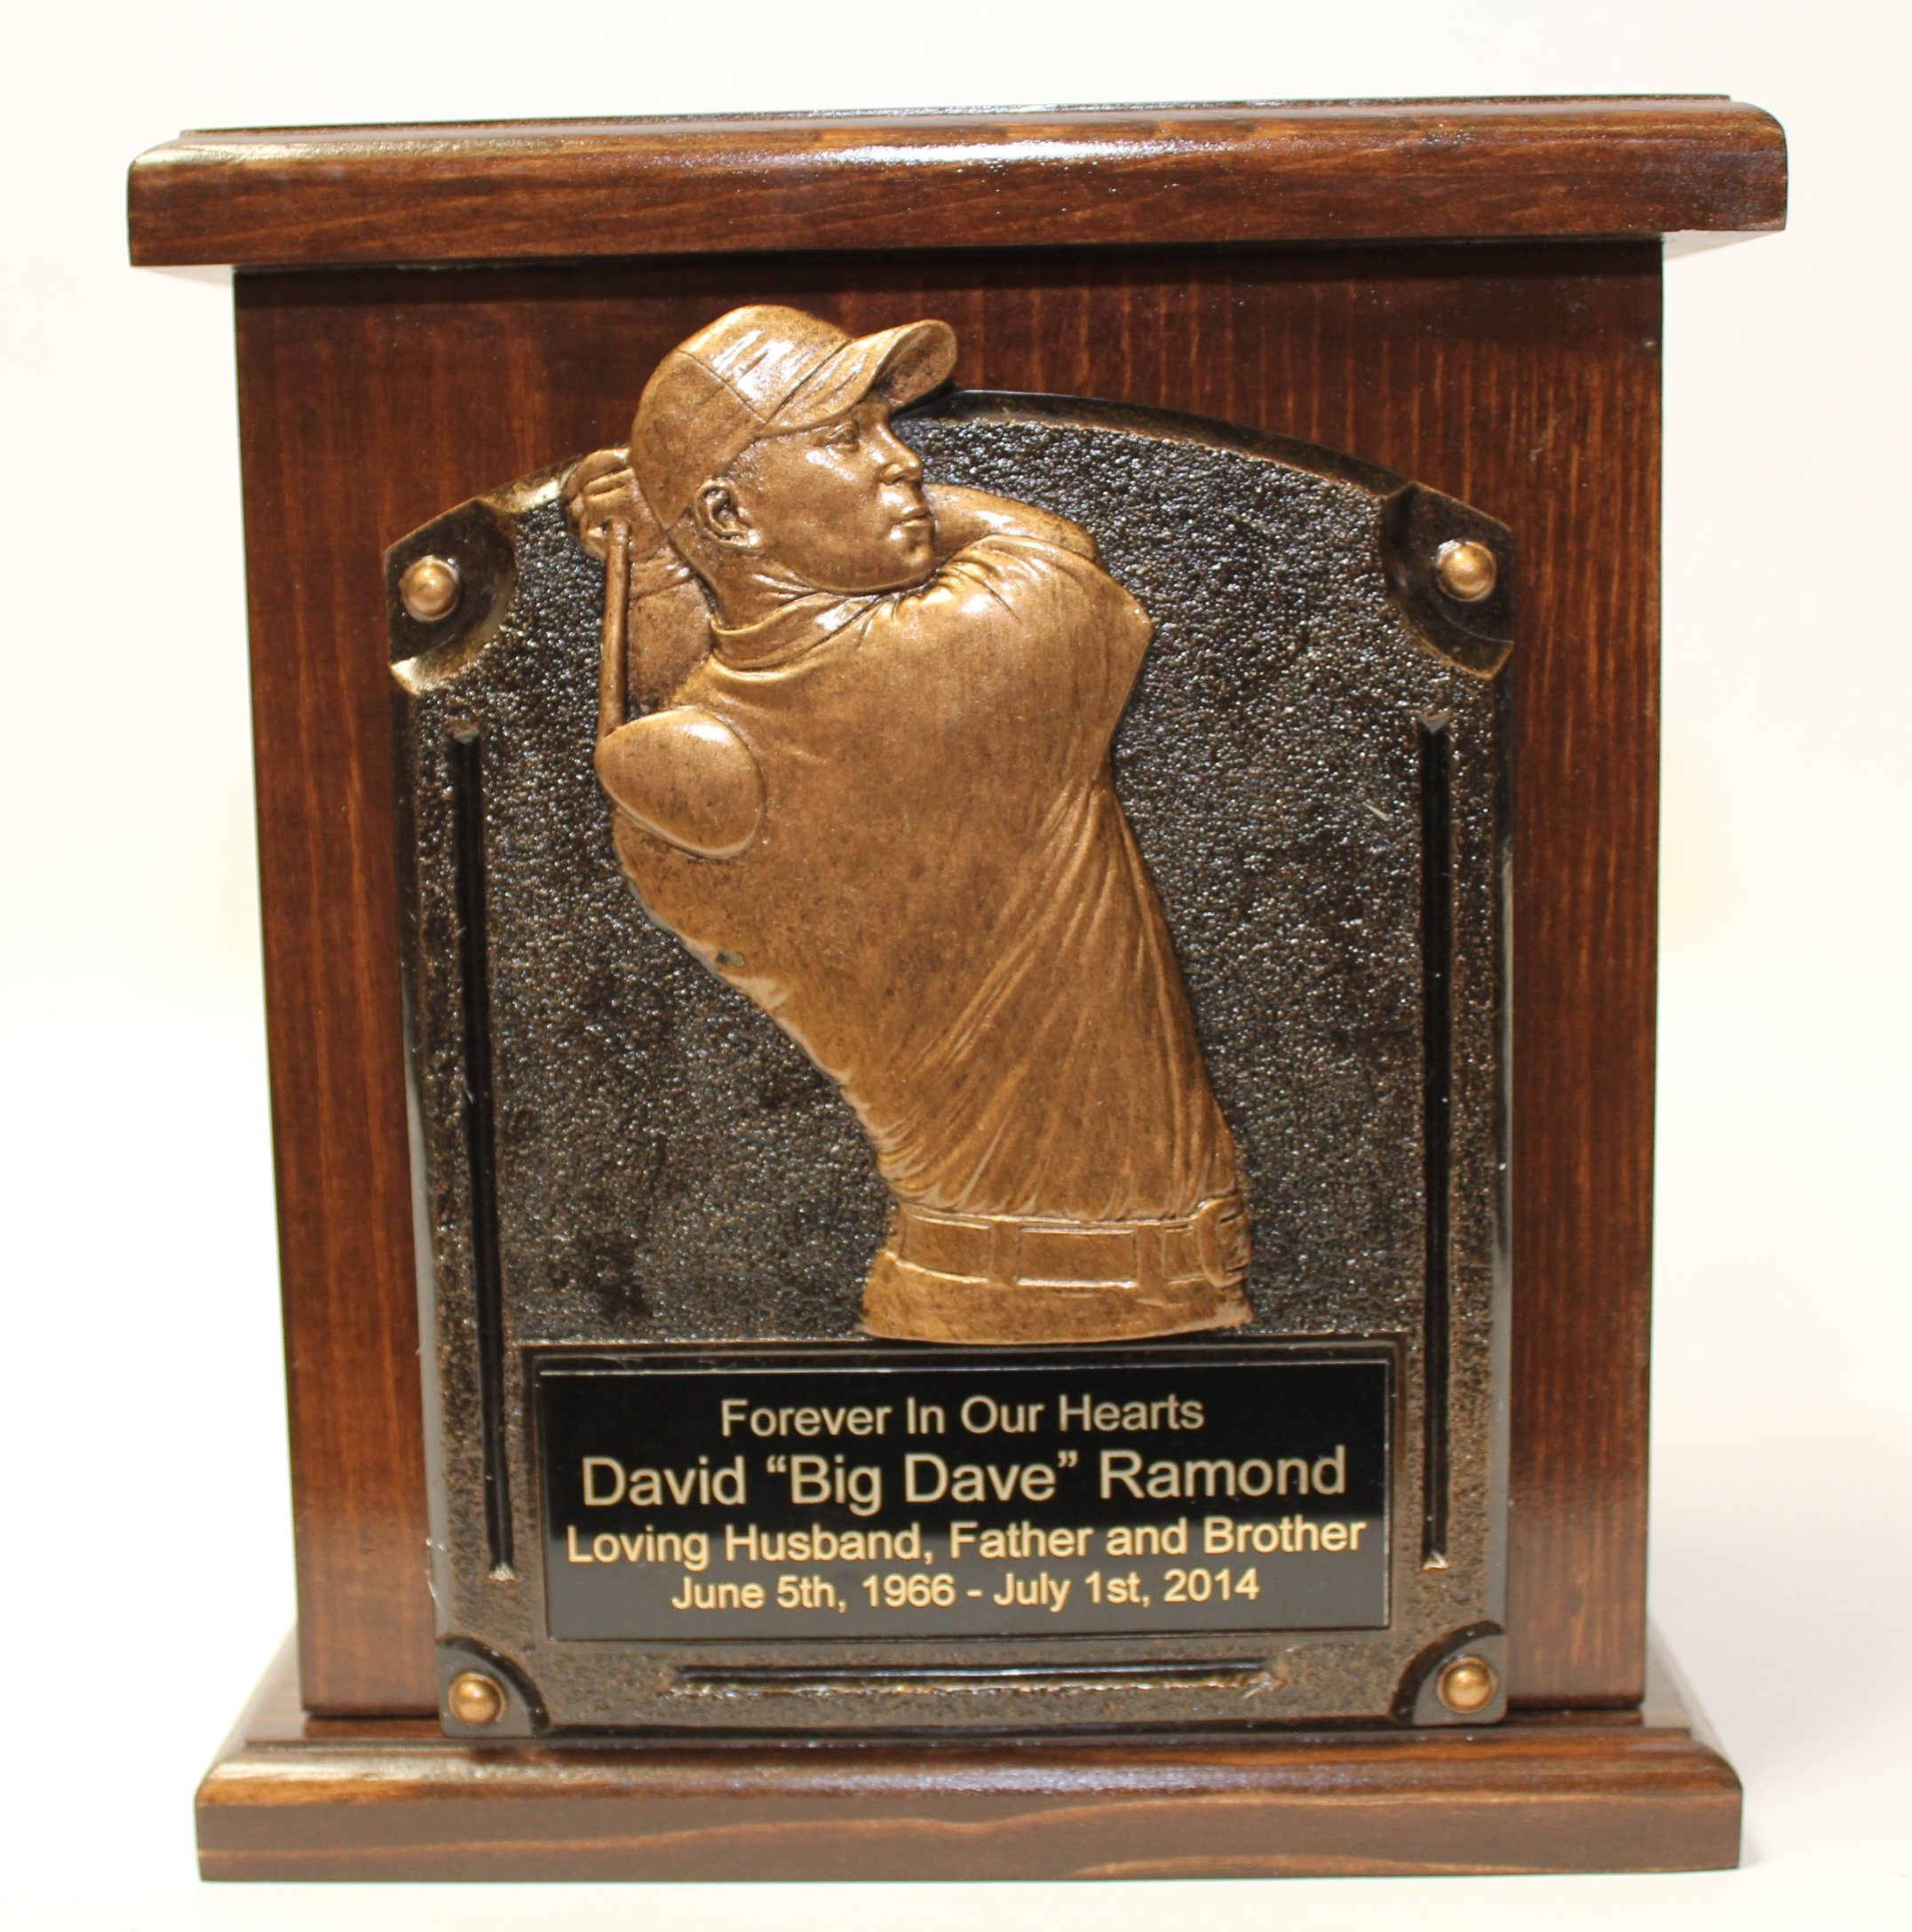 Golf Adult Memorial Wood Cremation Urn-Sports Funeral Urns-w/personalization